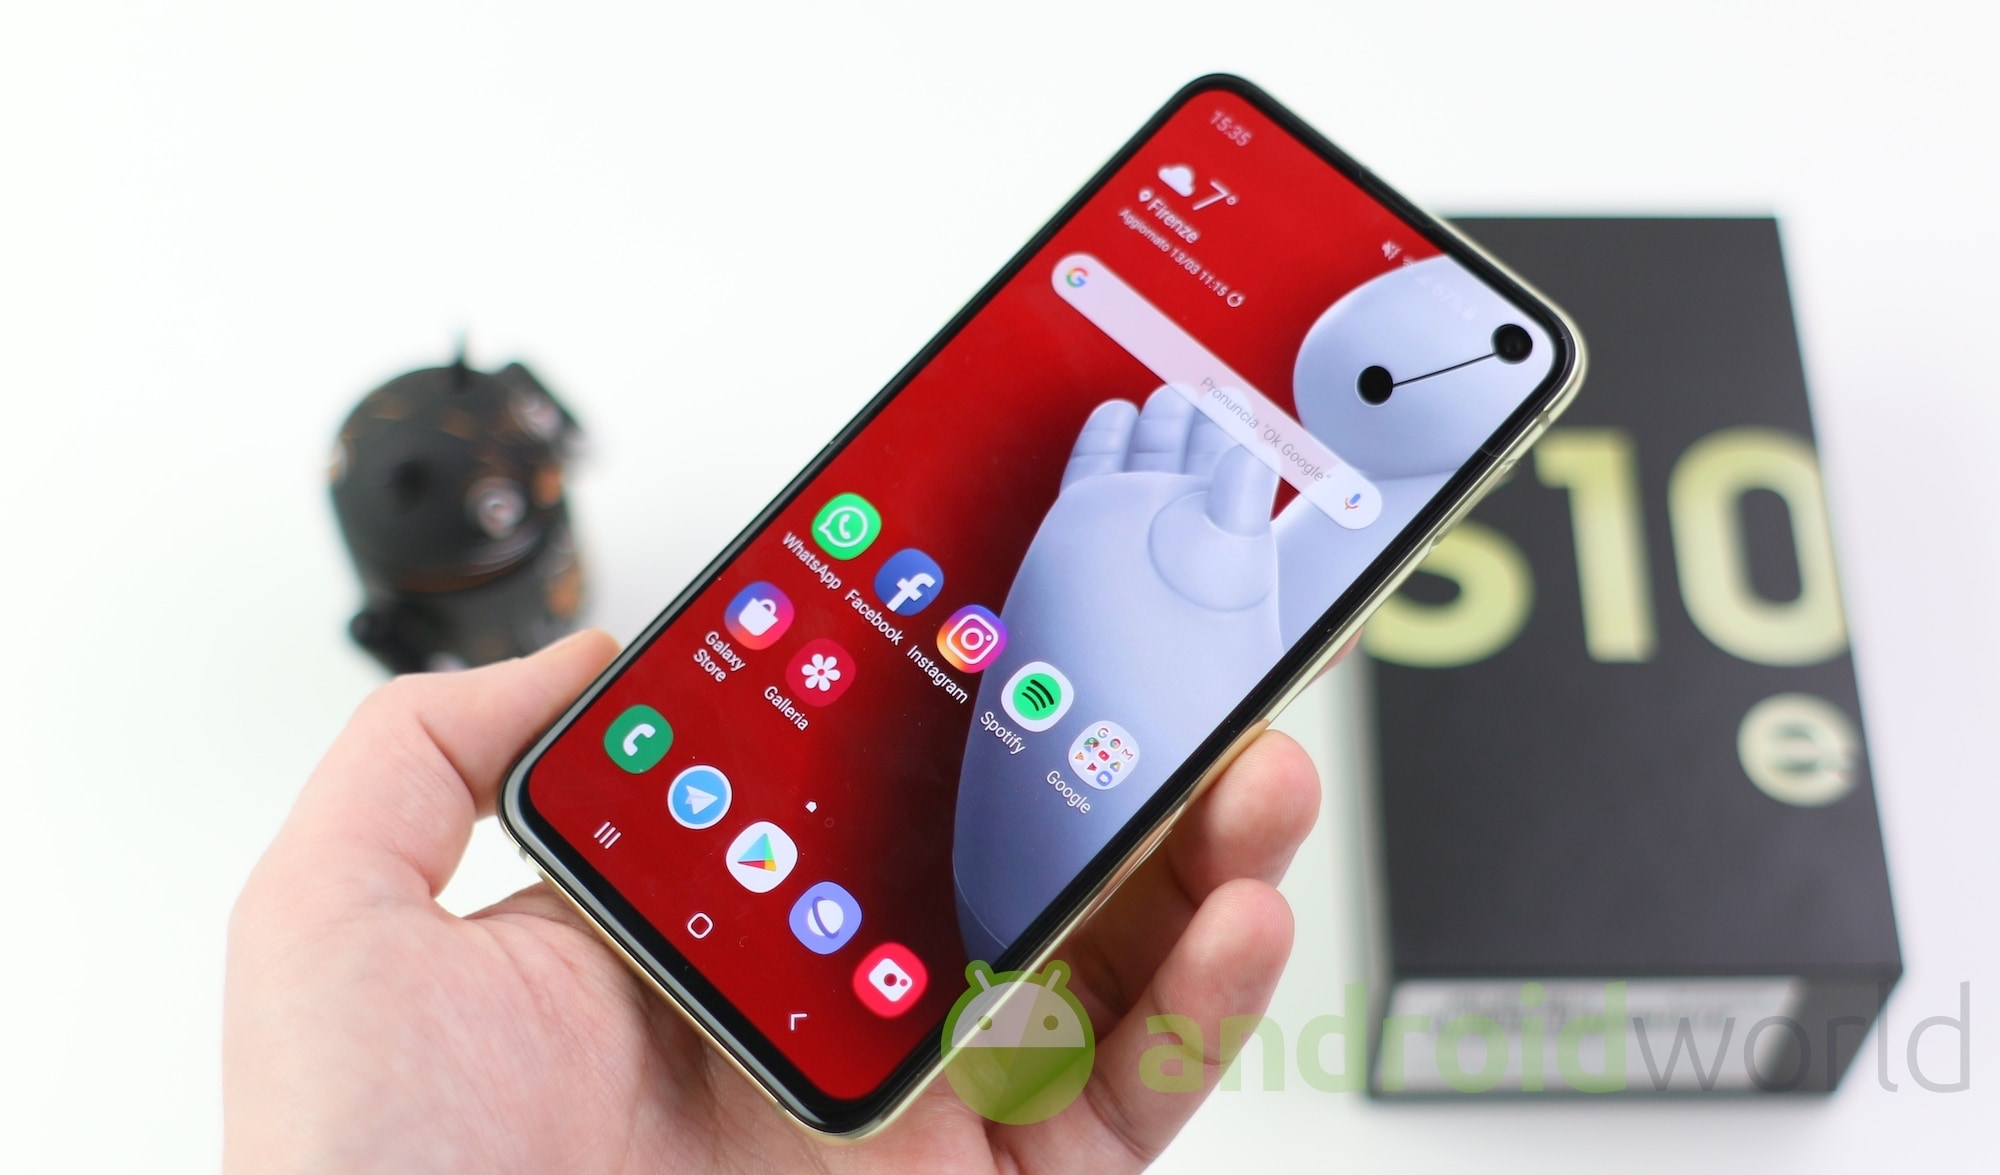 What price for Galaxy S10e: 440 € in various colors on Amazon